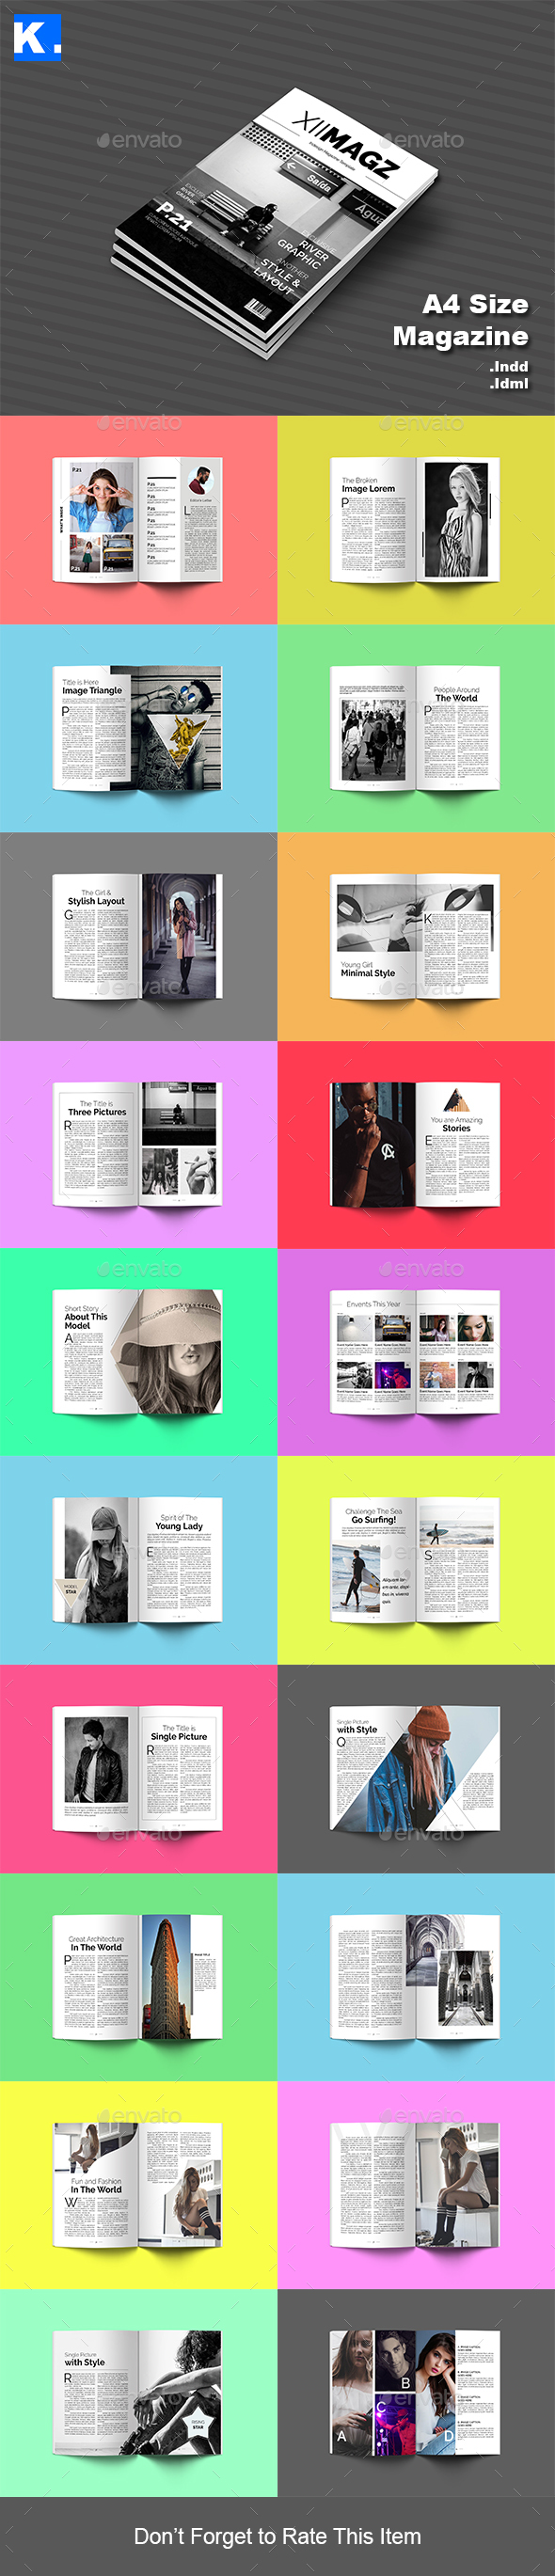 Indesign Magazine Template 4 - Magazines Print Templates